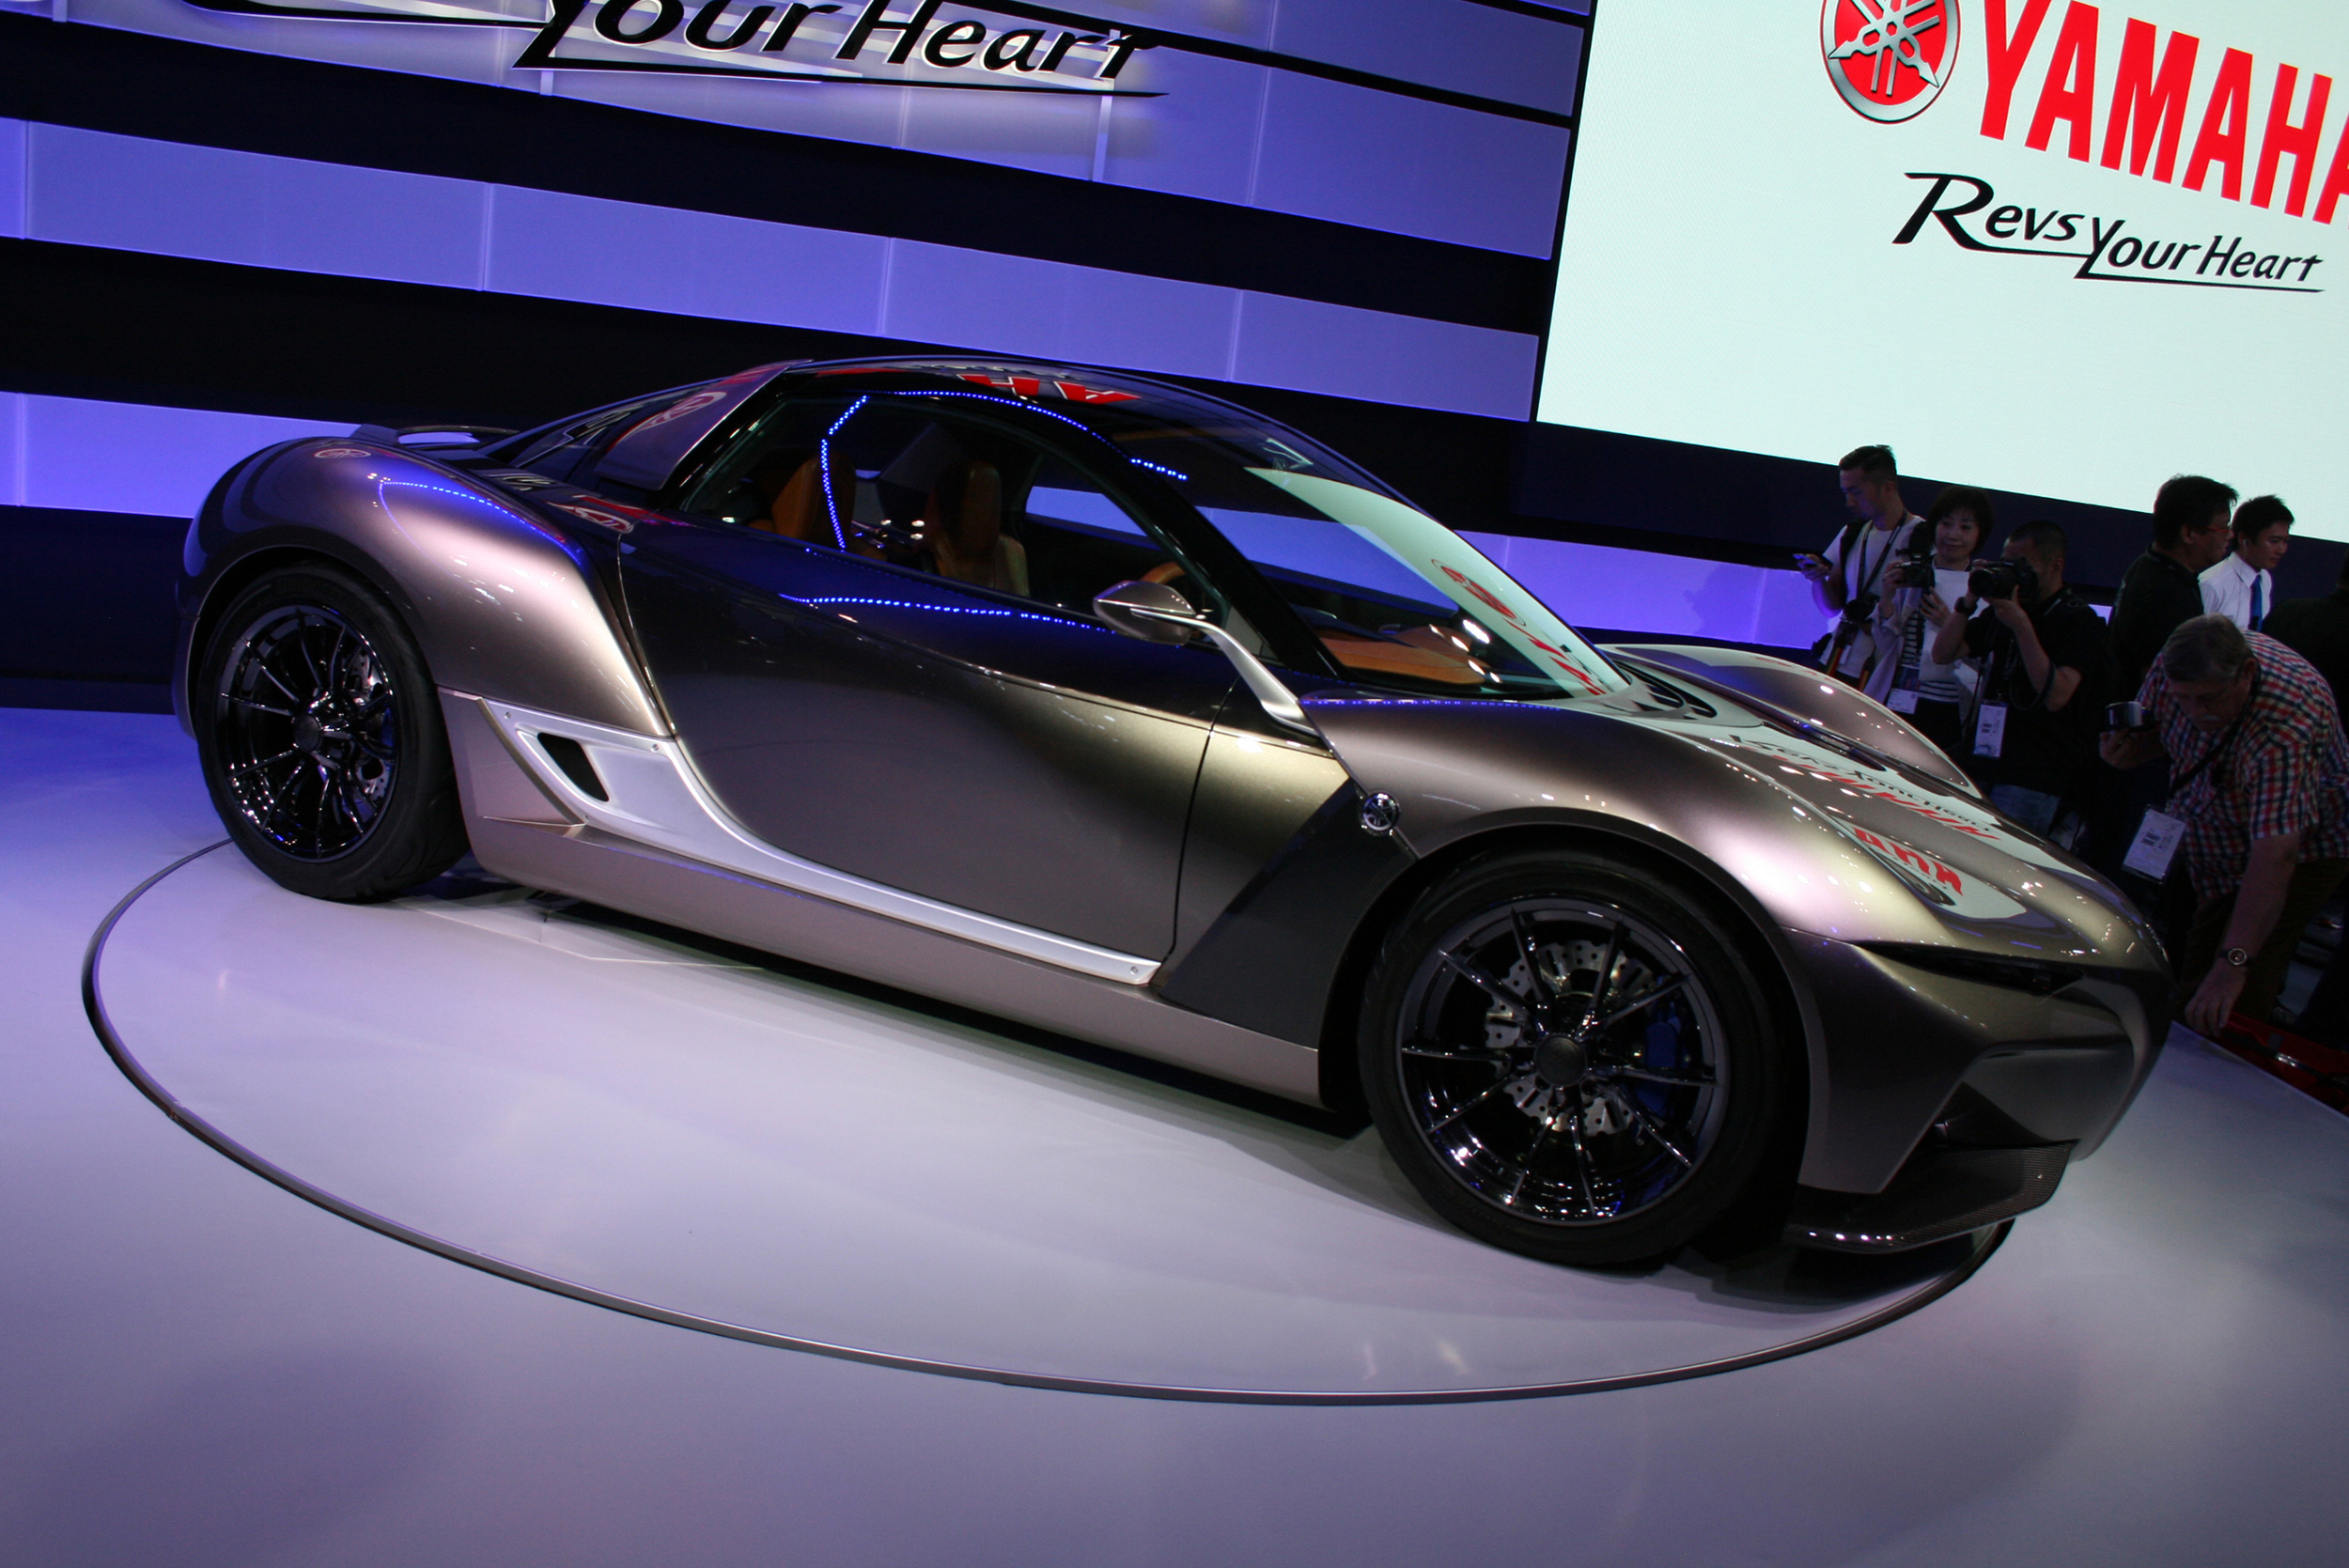 Yamaha reveals new sports car in Tokyo